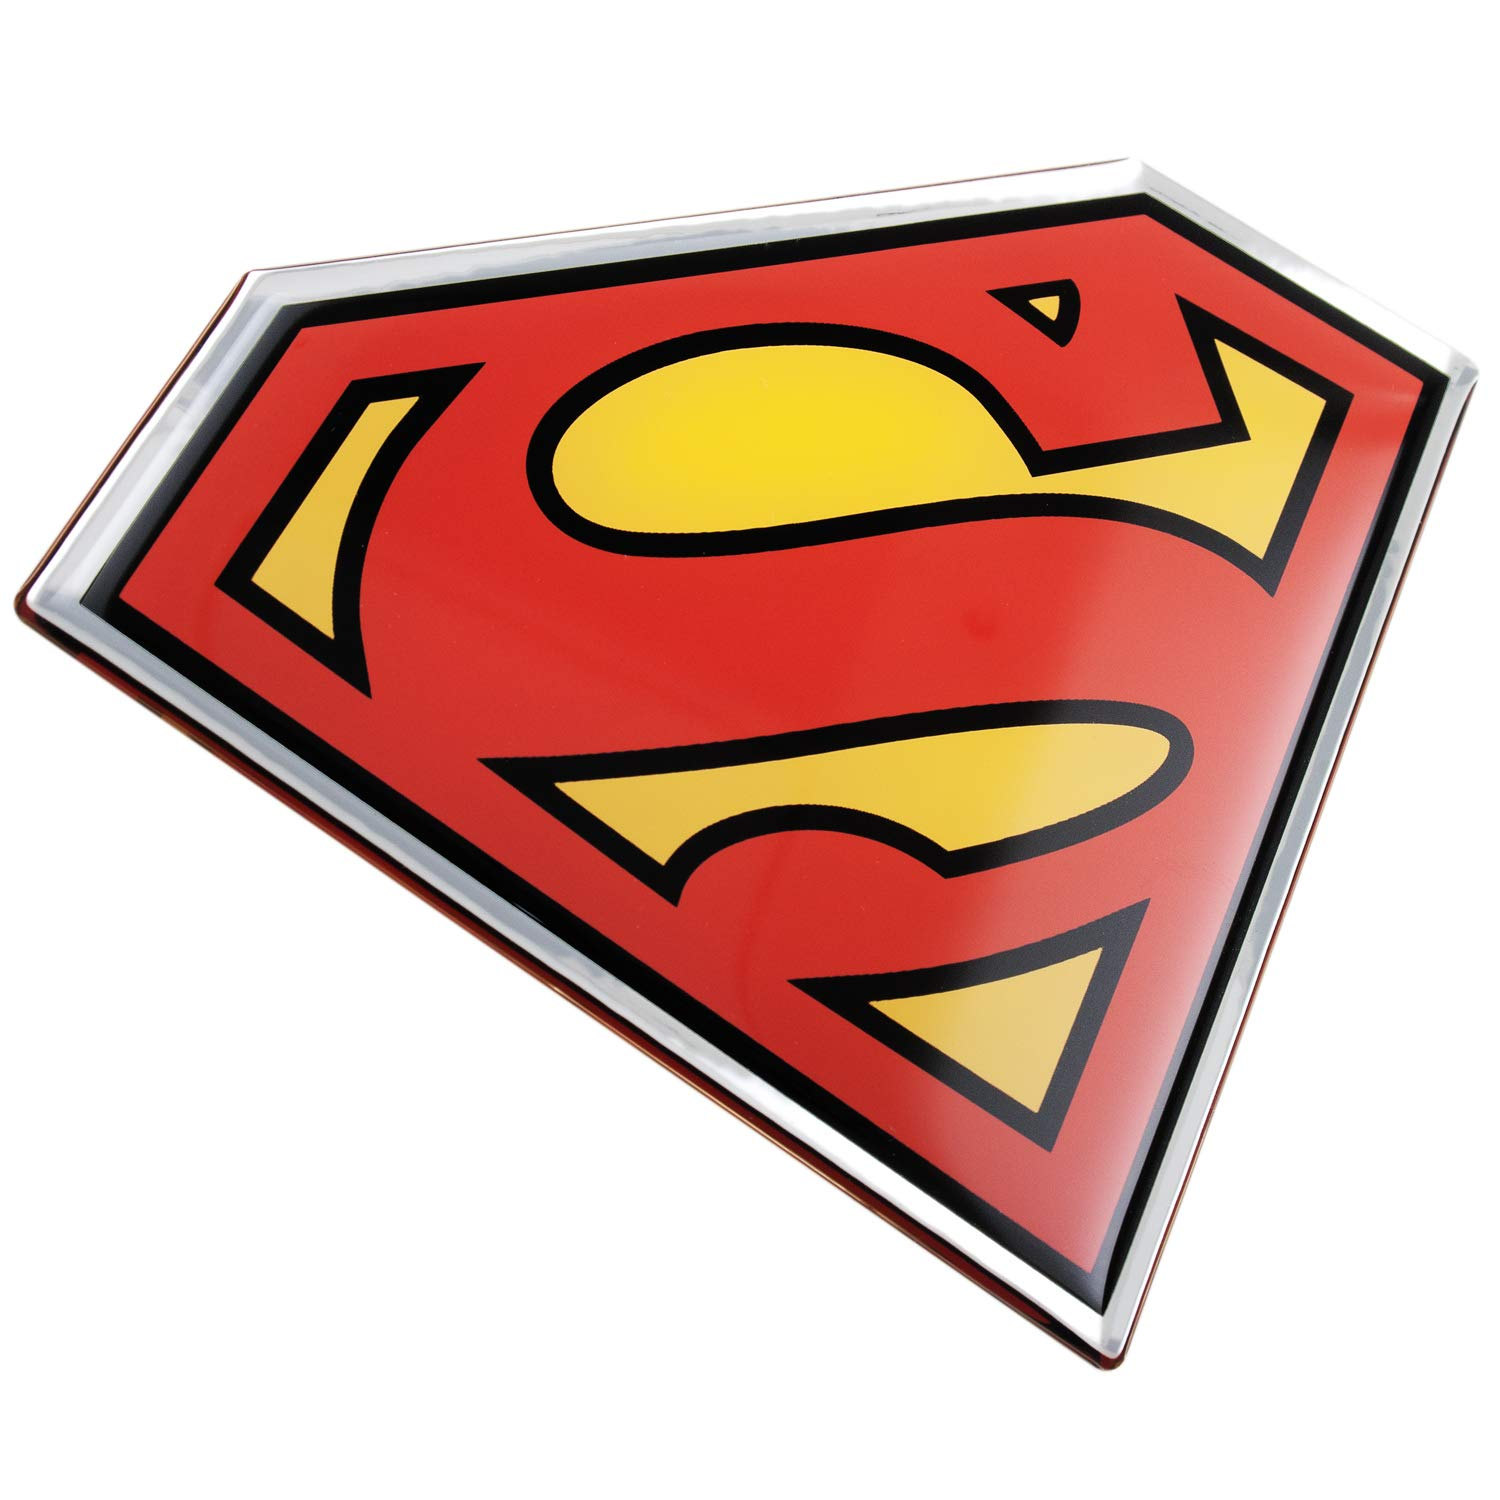 Fan emblems superman logo car decal domed black red yellow chrome finish dc comics automotive emblem sticker applies easily to cars trucks motorcycles